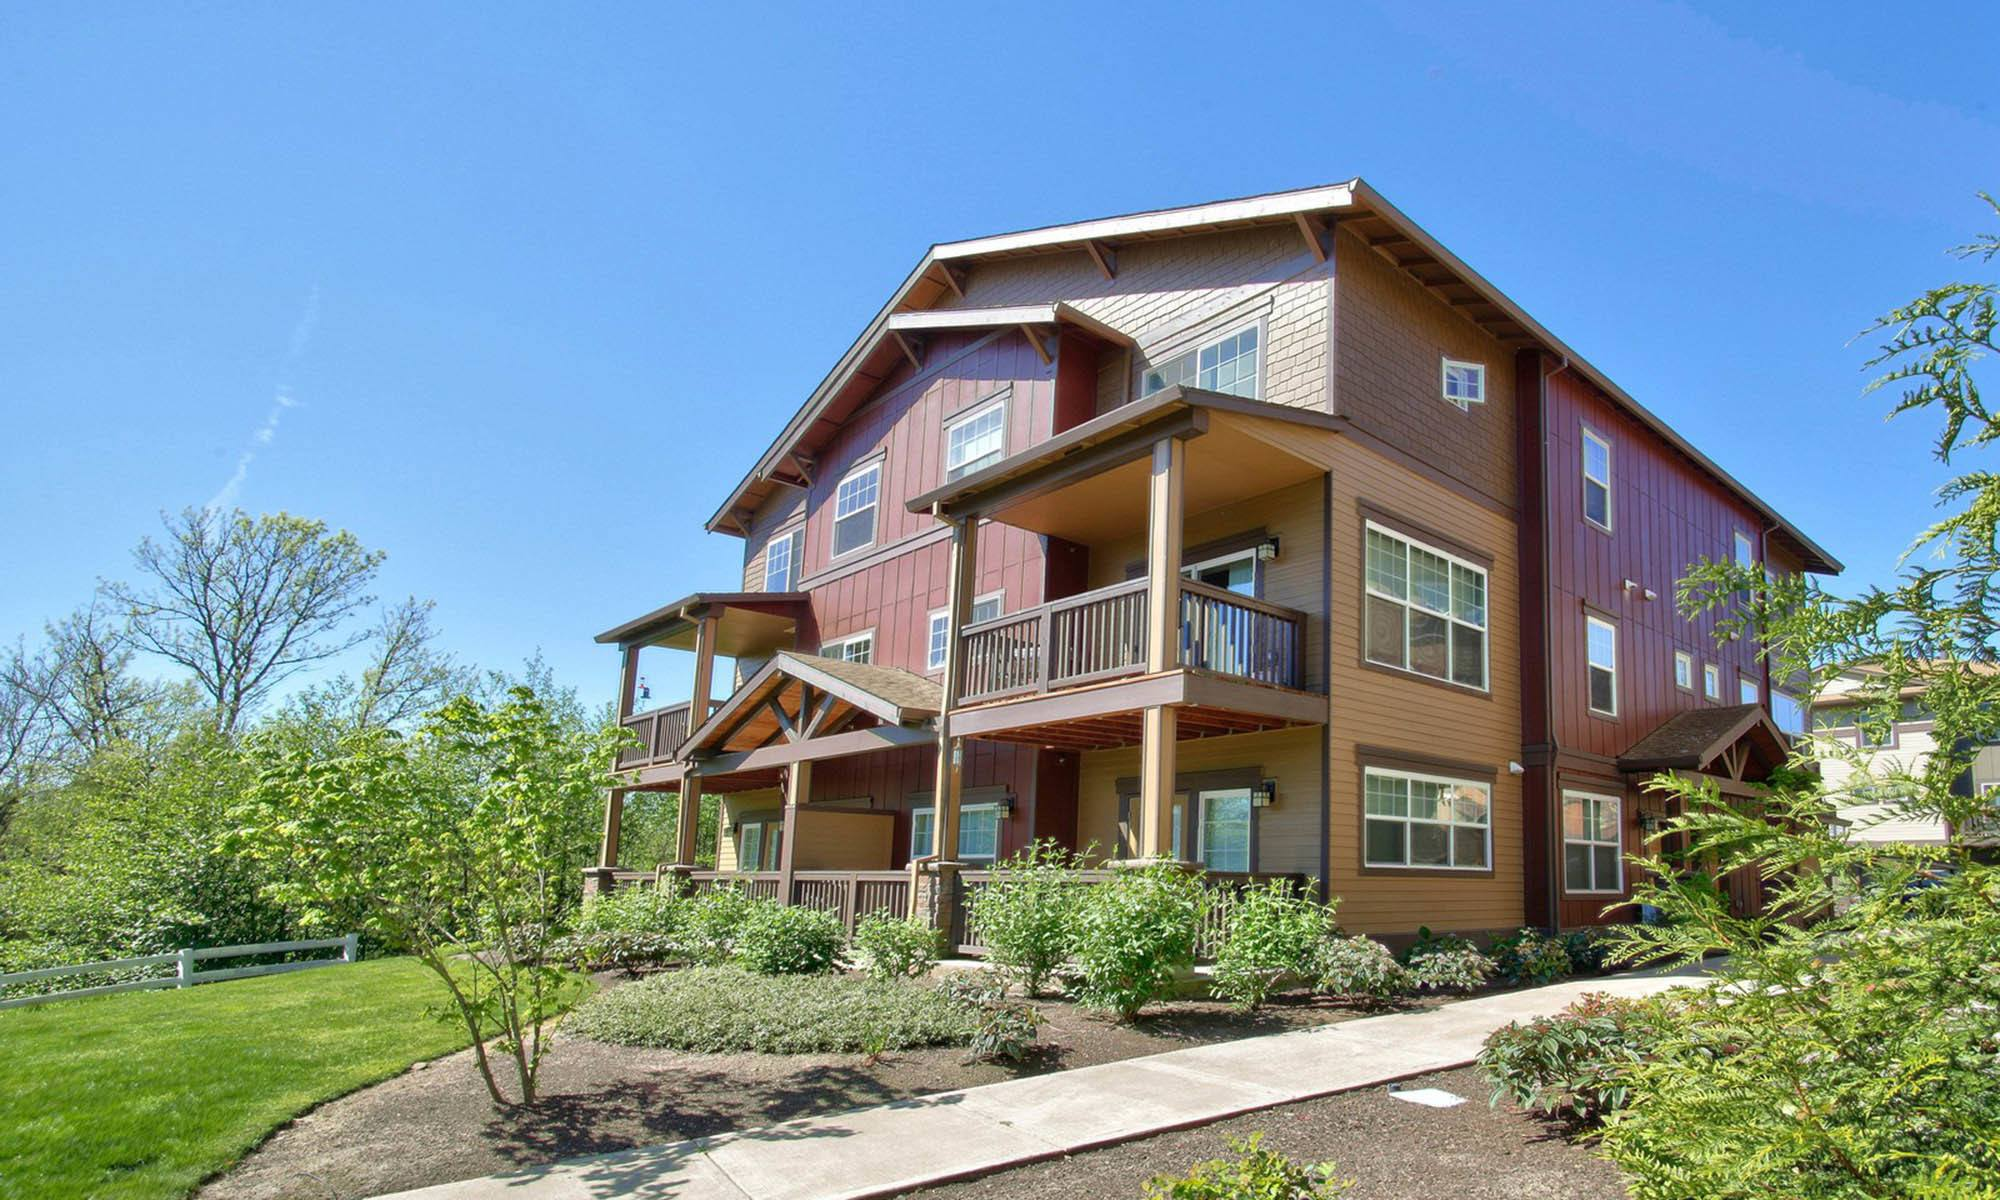 Live among the beauty that is the northwest at Sunset Crossing apartments in Beaverton.